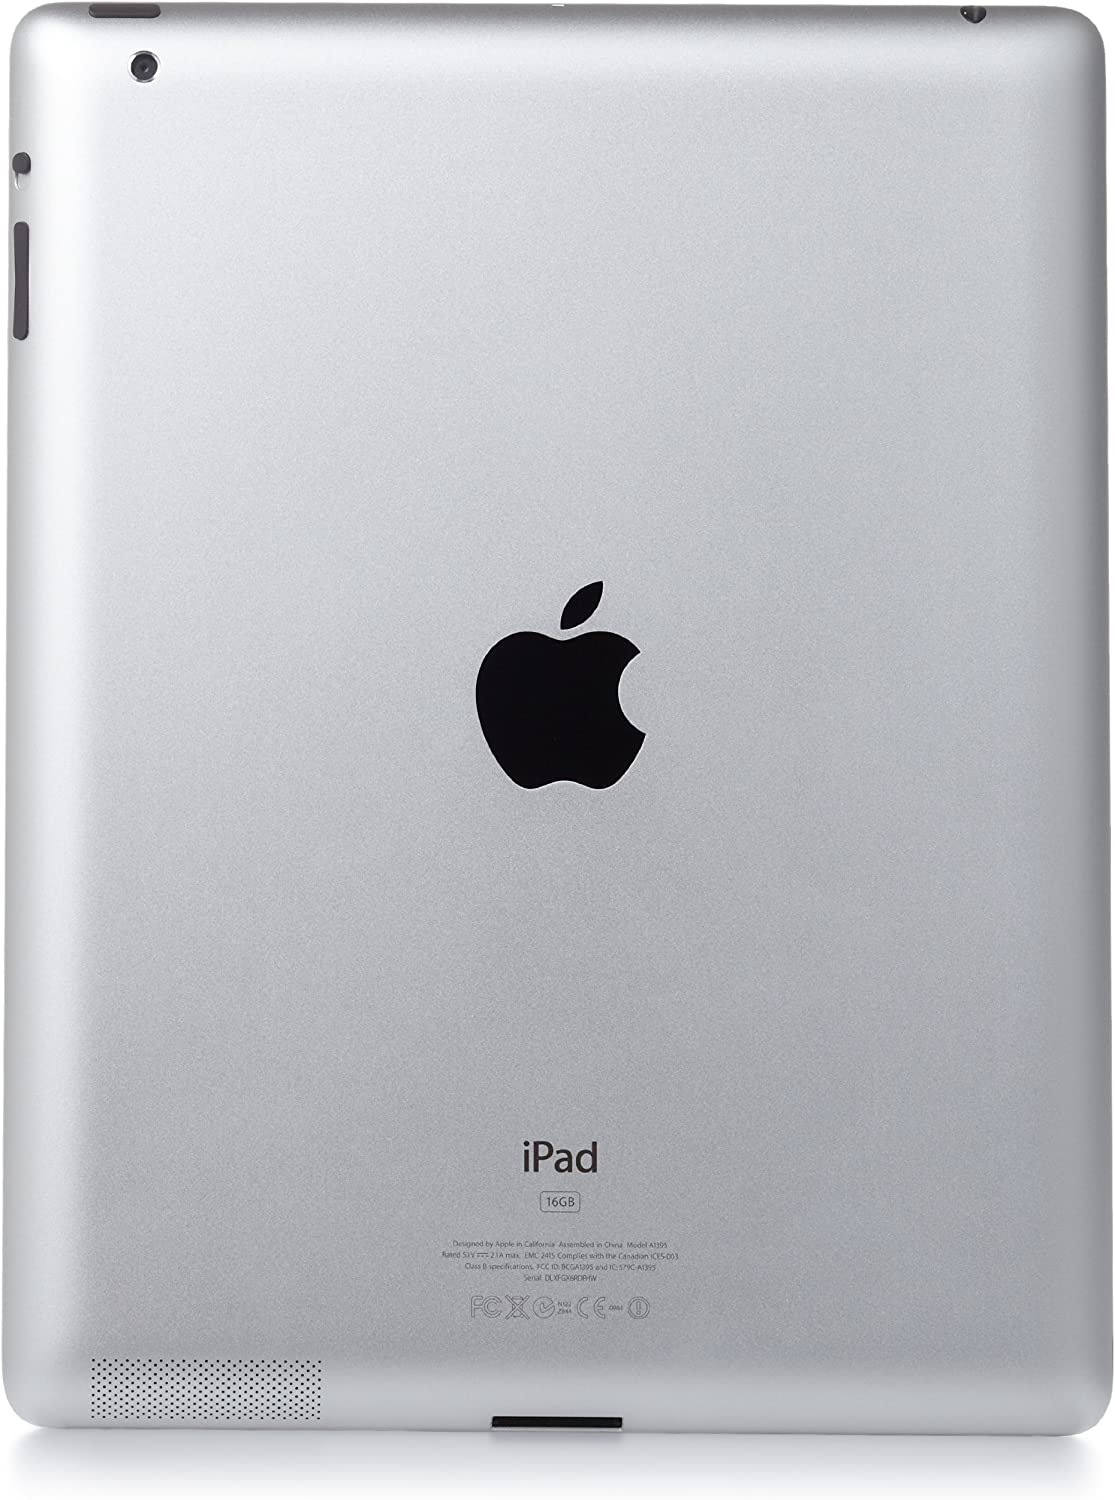 2nd Generation Apple iPad 2 MC773LL//A Tablet 16GB, Wifi + AT/&T 3G, Black